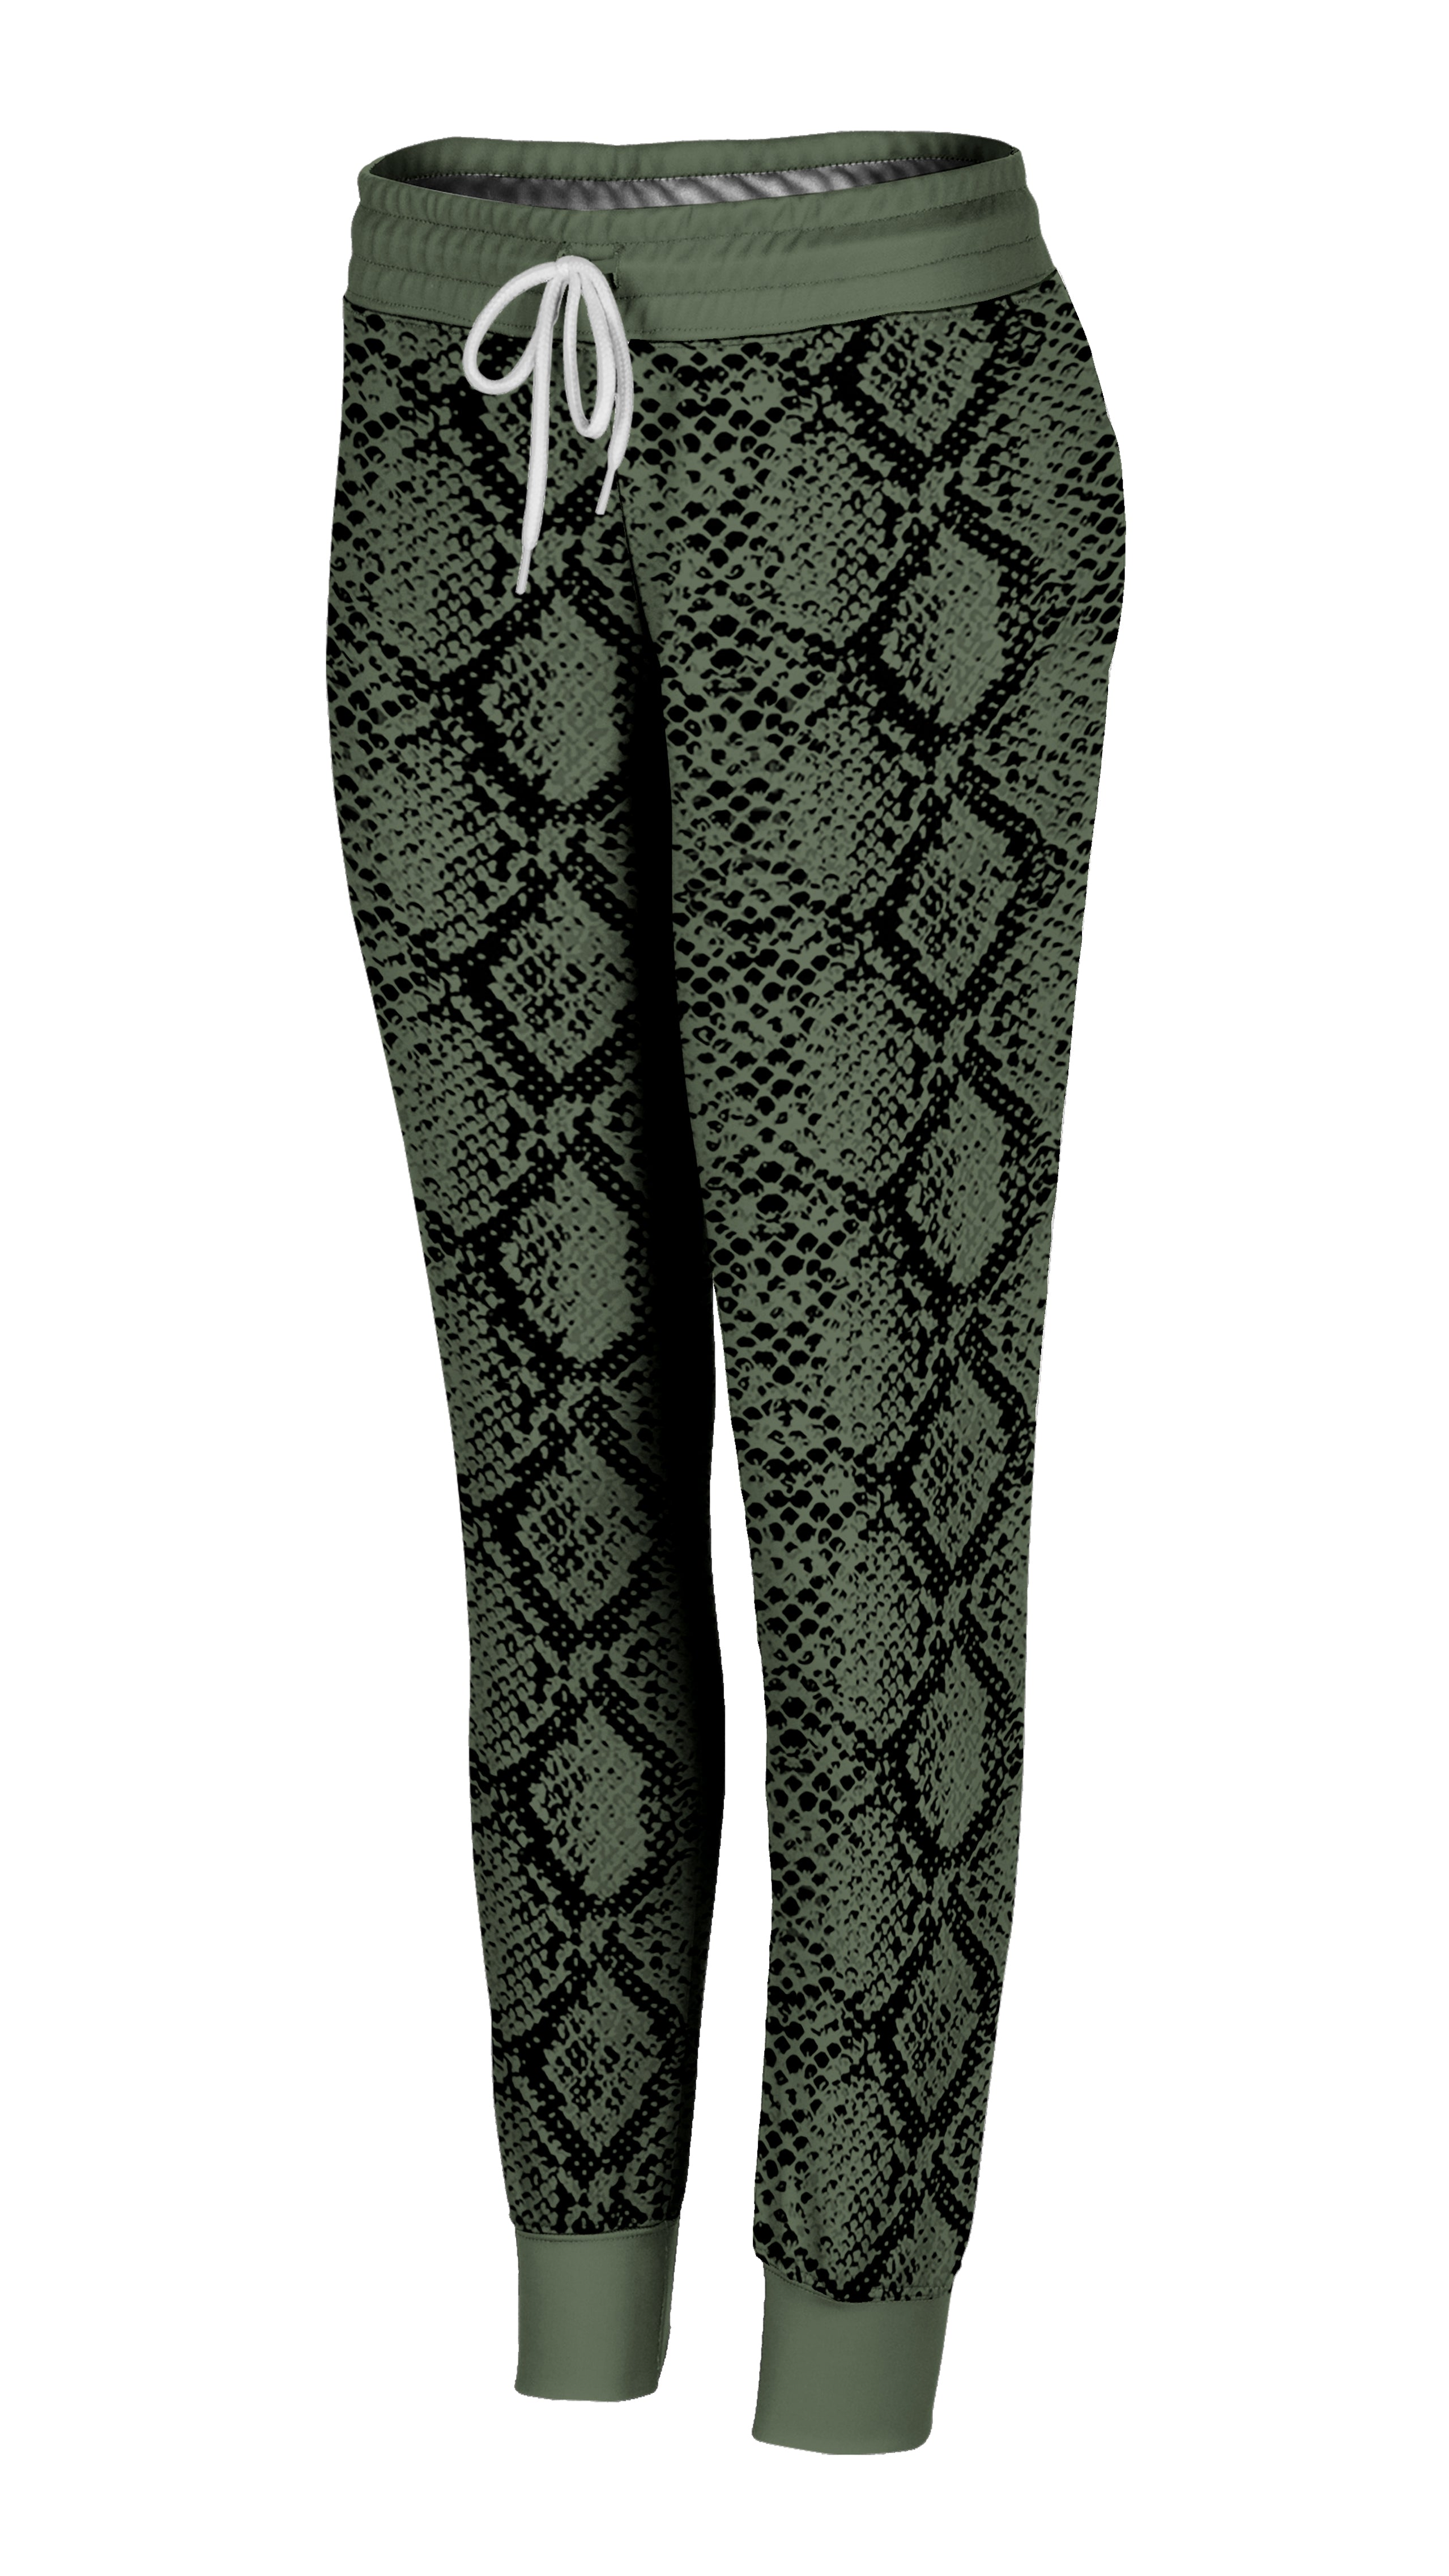 Olive Green Snakeskin Joggers